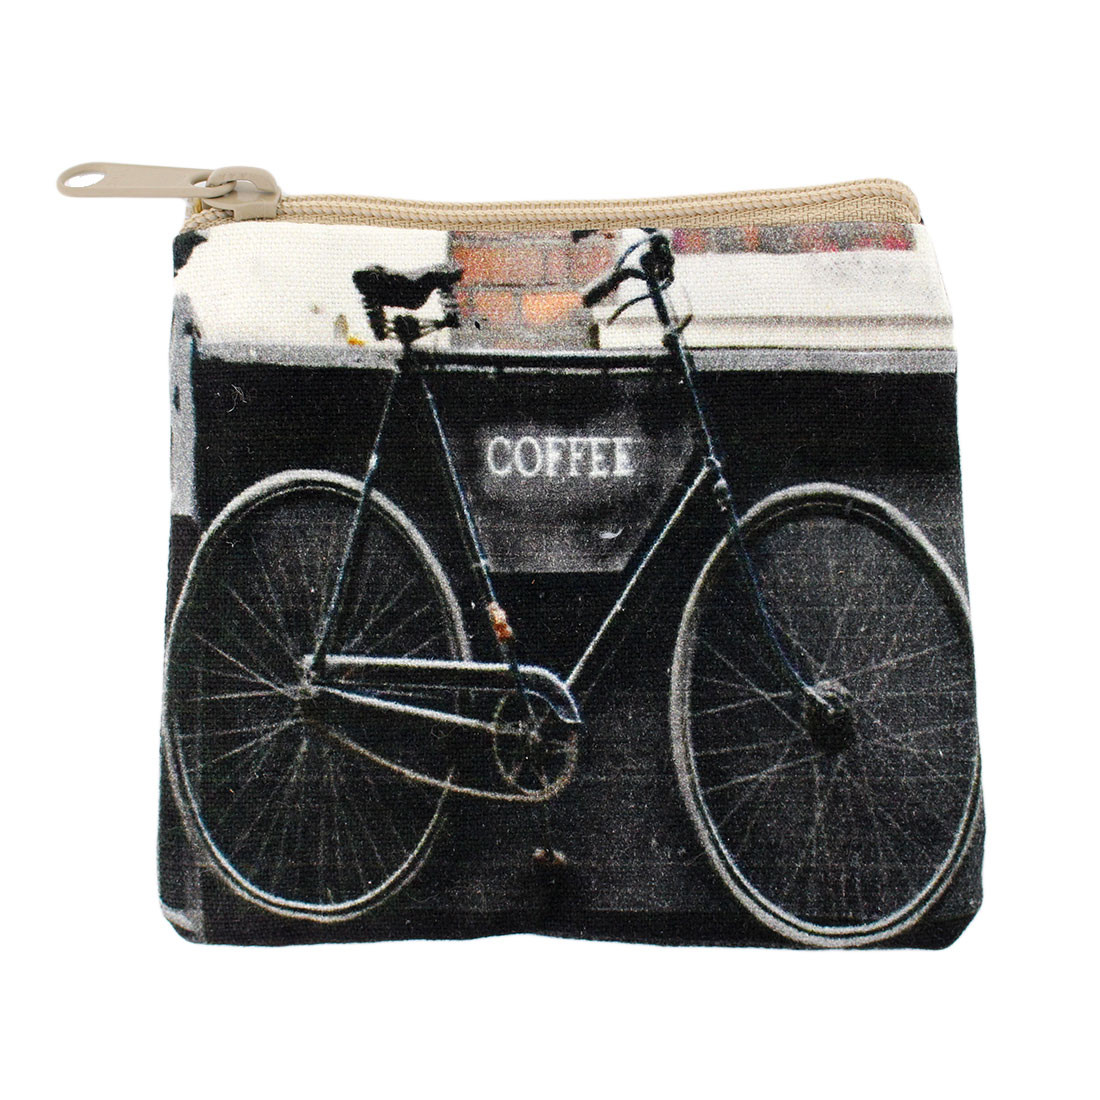 Vintage bicycle coffee picture on small coin purse.